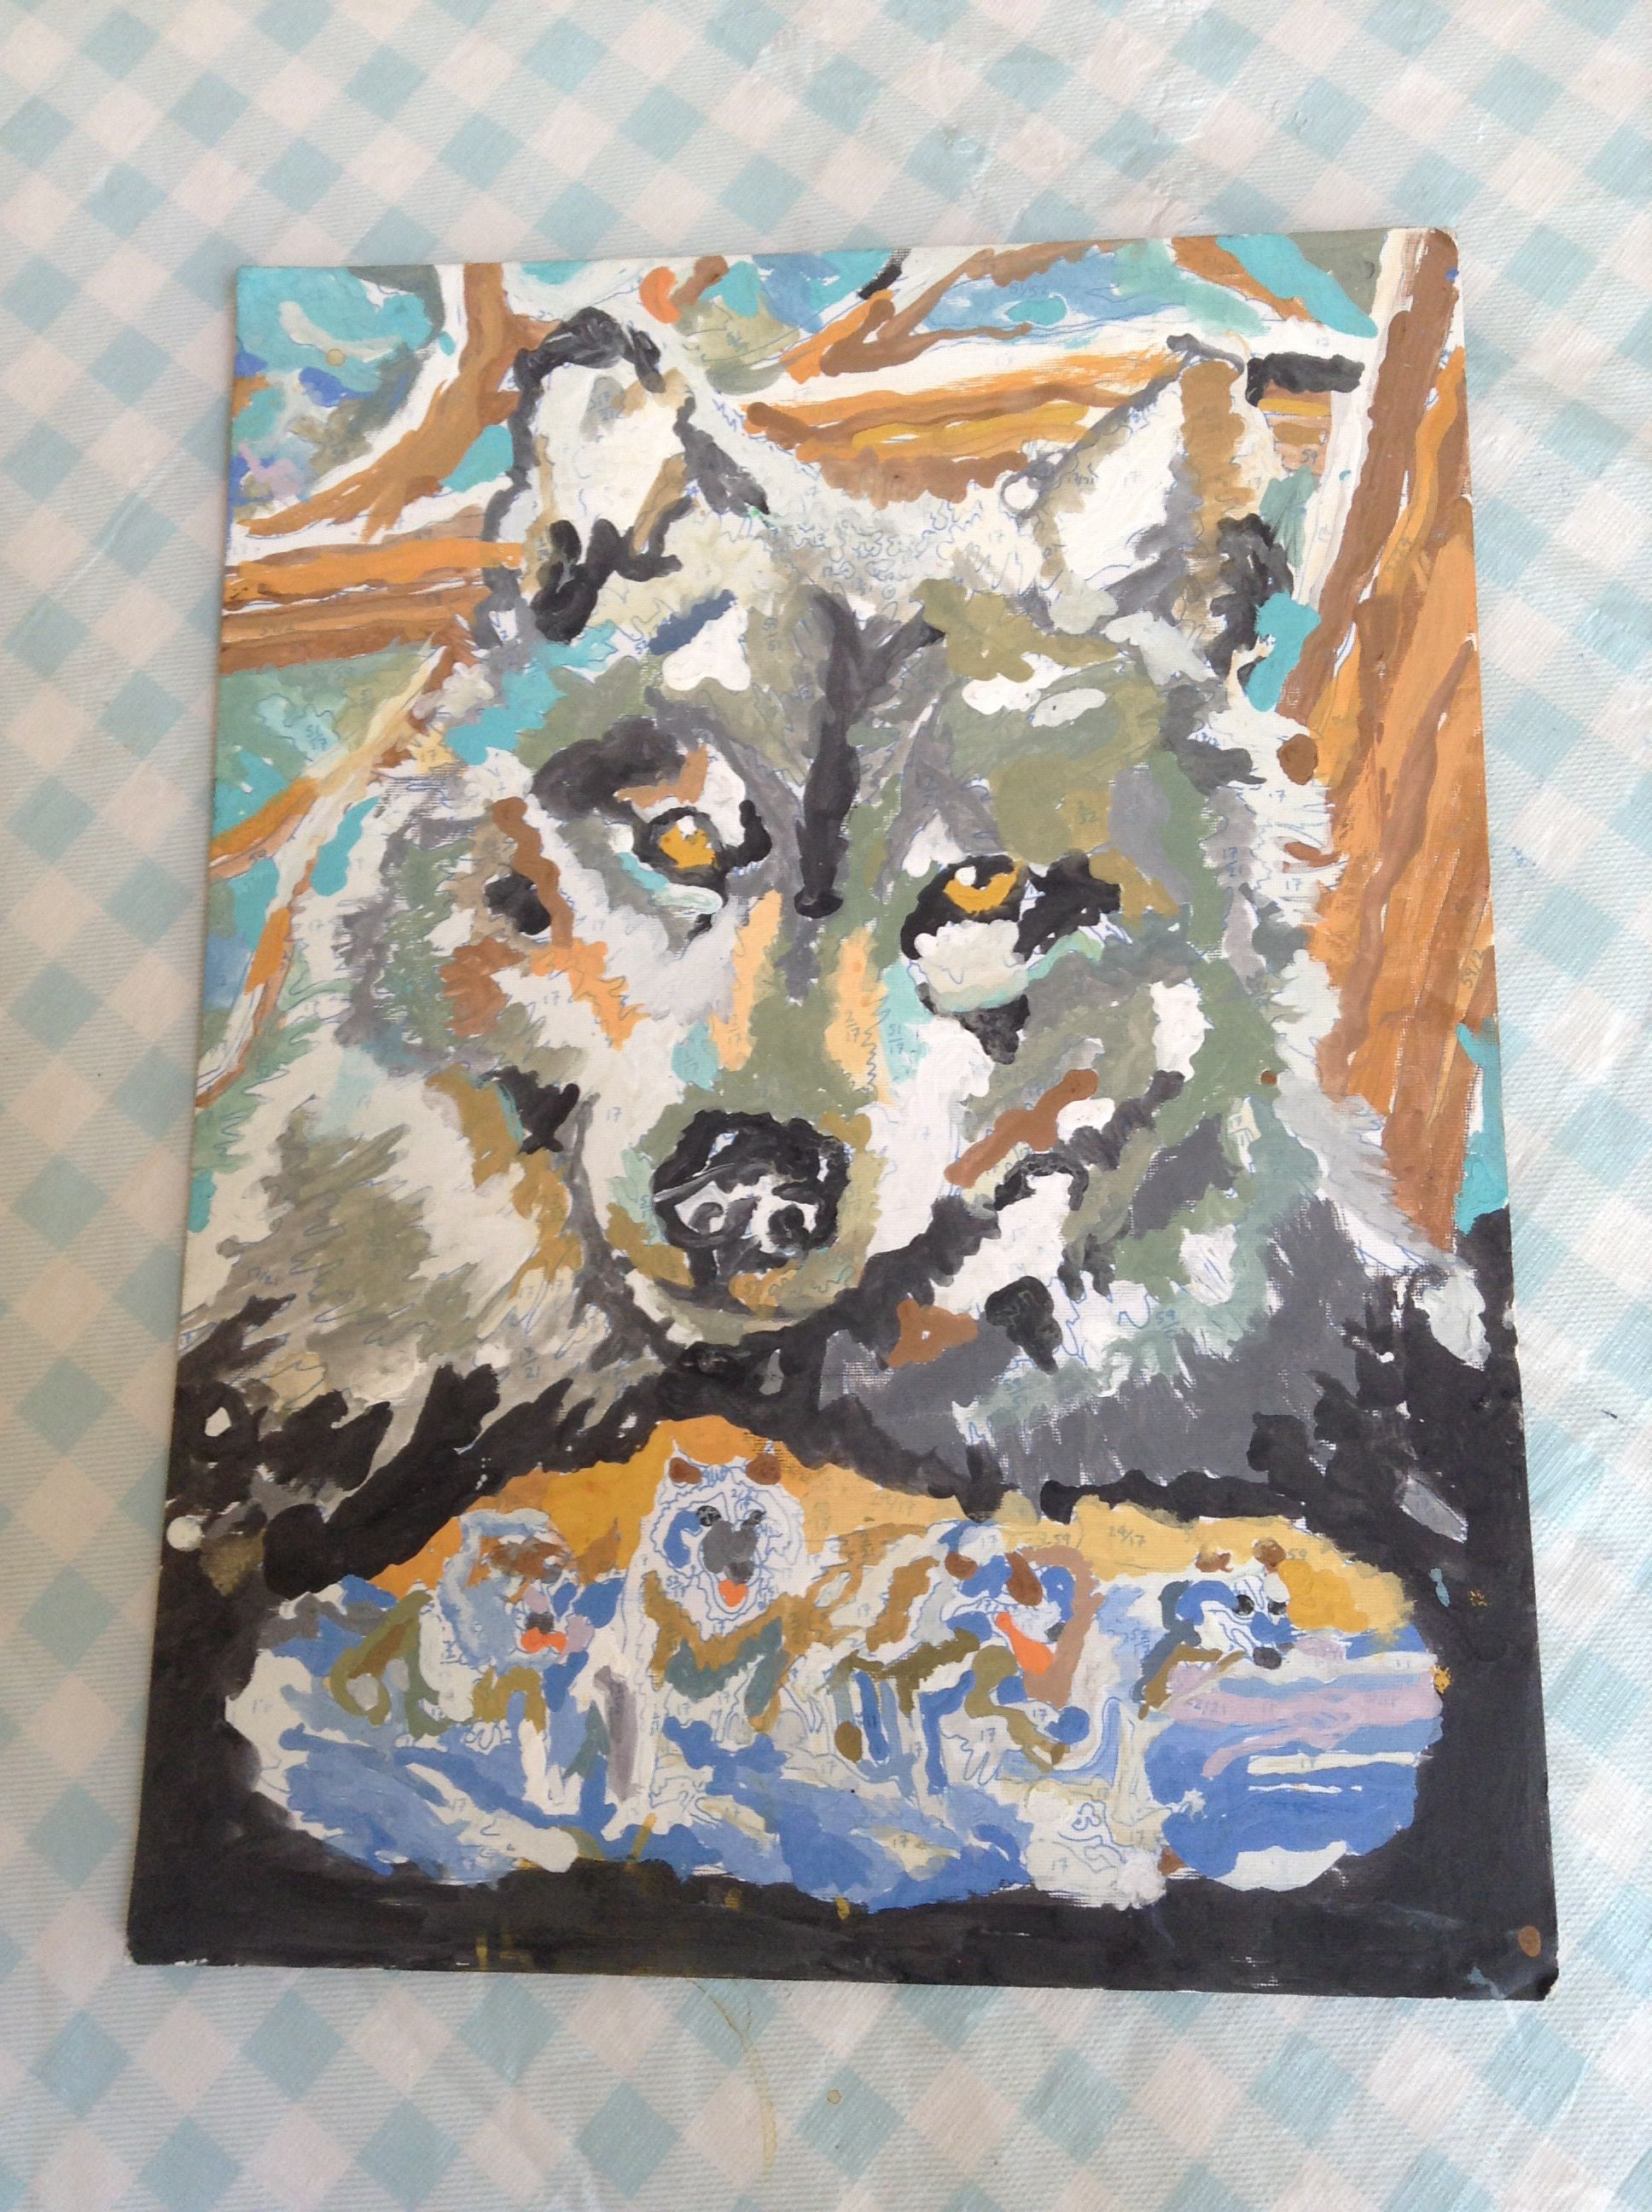 Painting by numbers wolf. | Painting, Art, Paint by number